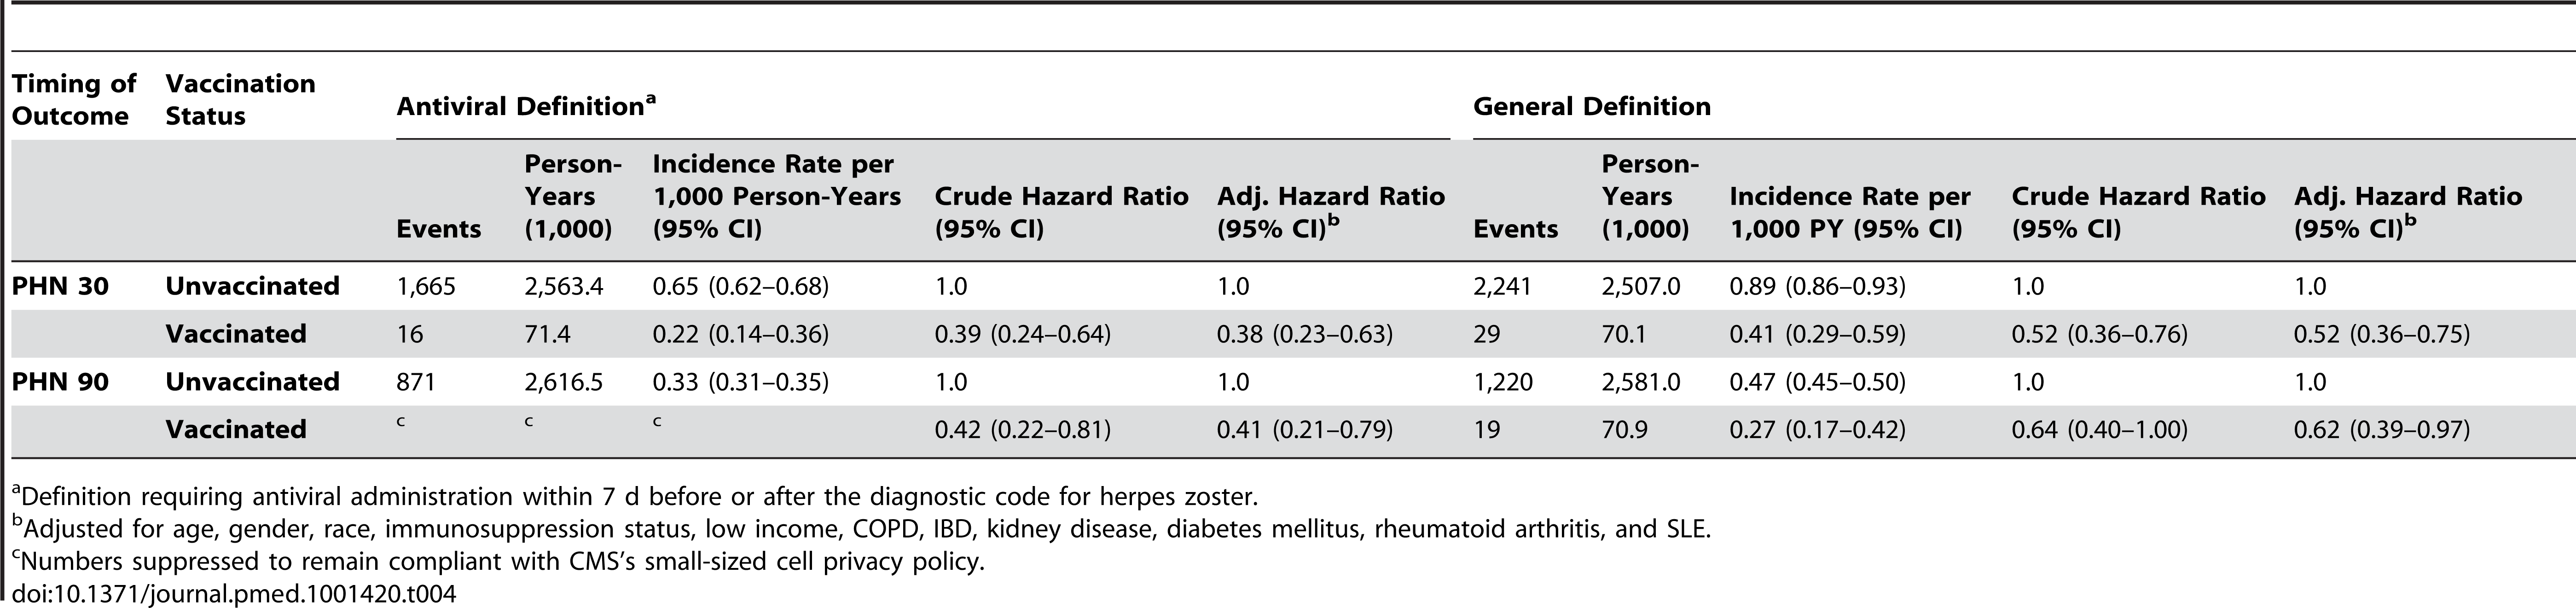 Zoster vaccine effectiveness against PHN by characteristics and disease definition.